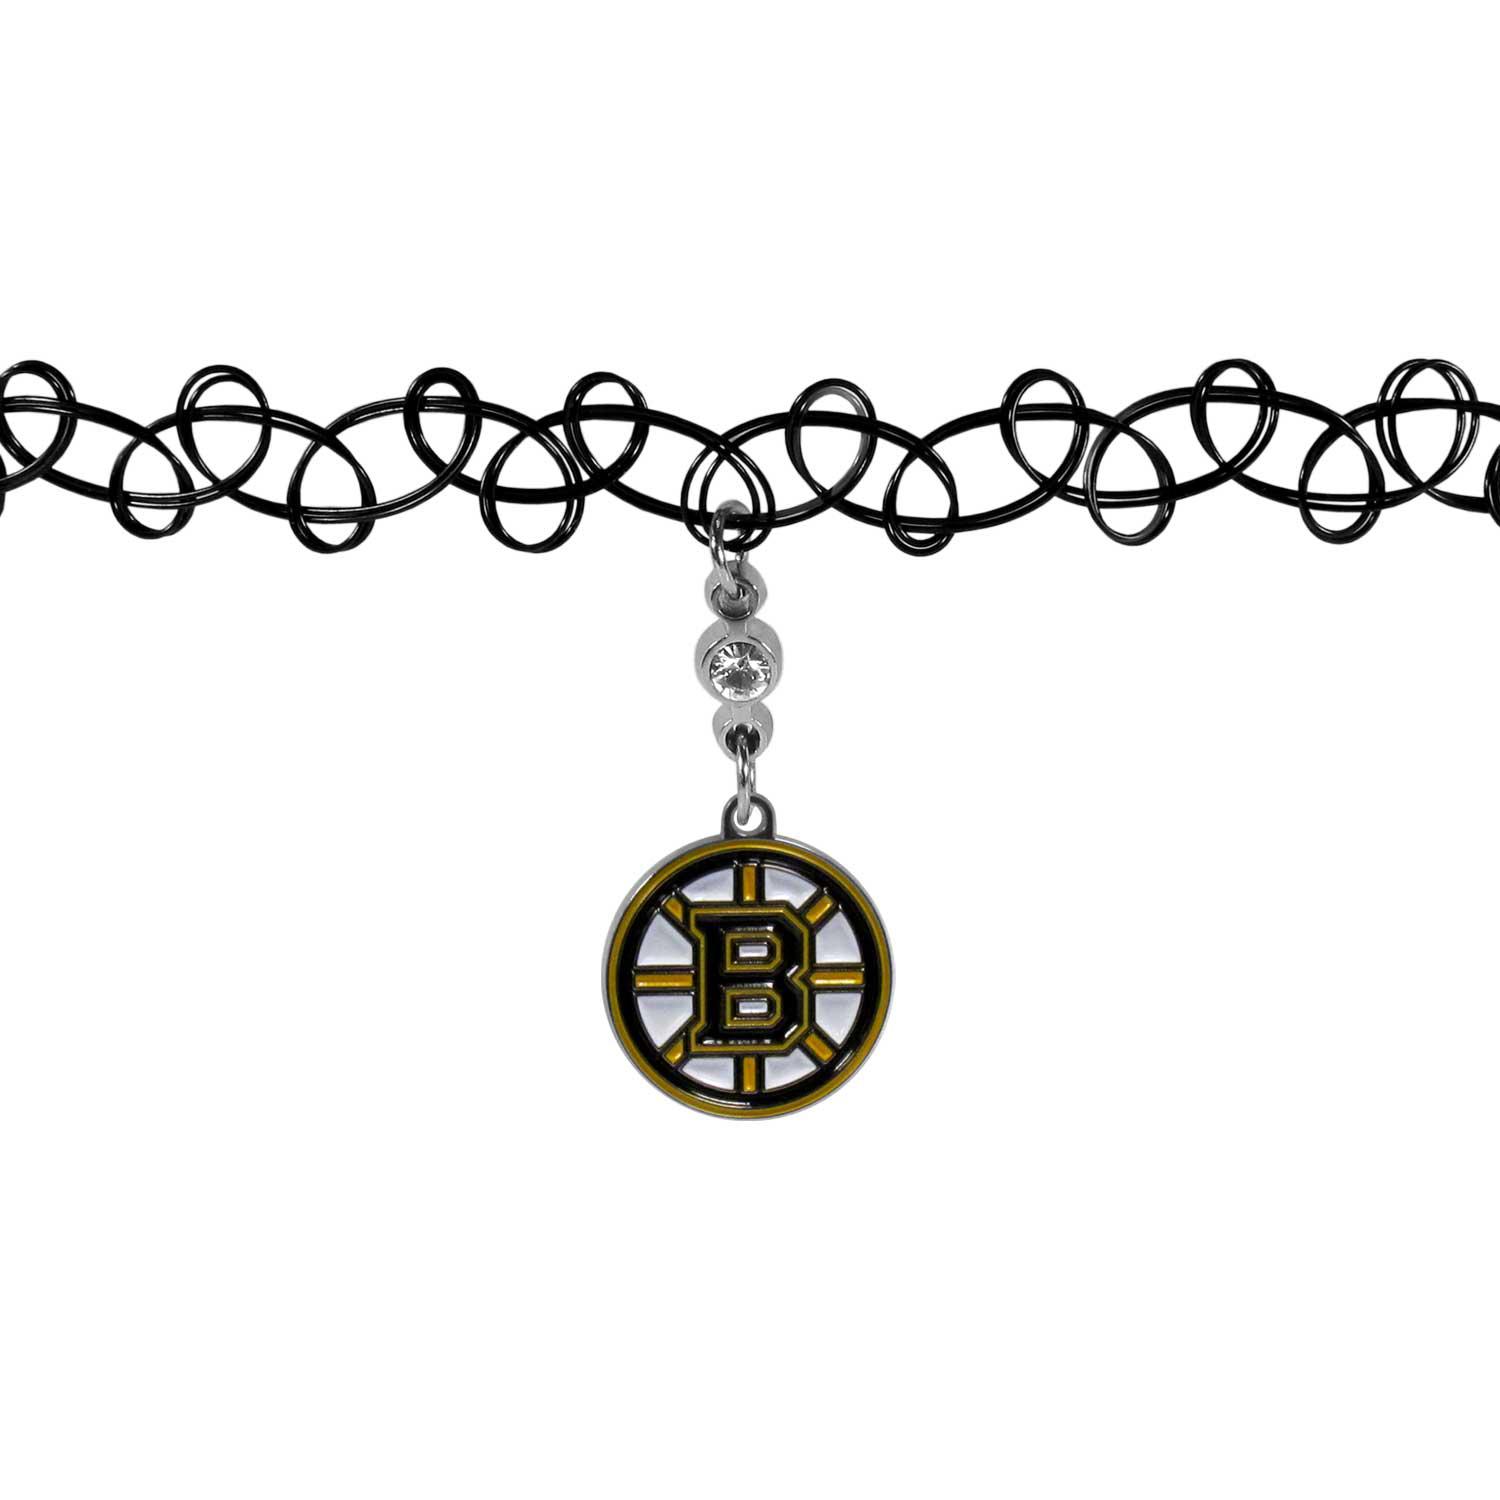 Boston Bruins® Knotted Choker - This retro, knotted choker is a cool and unique piece of fan jewelry. The tattoo style choker features a high polish Boston Bruins® charm with rhinestone accents.